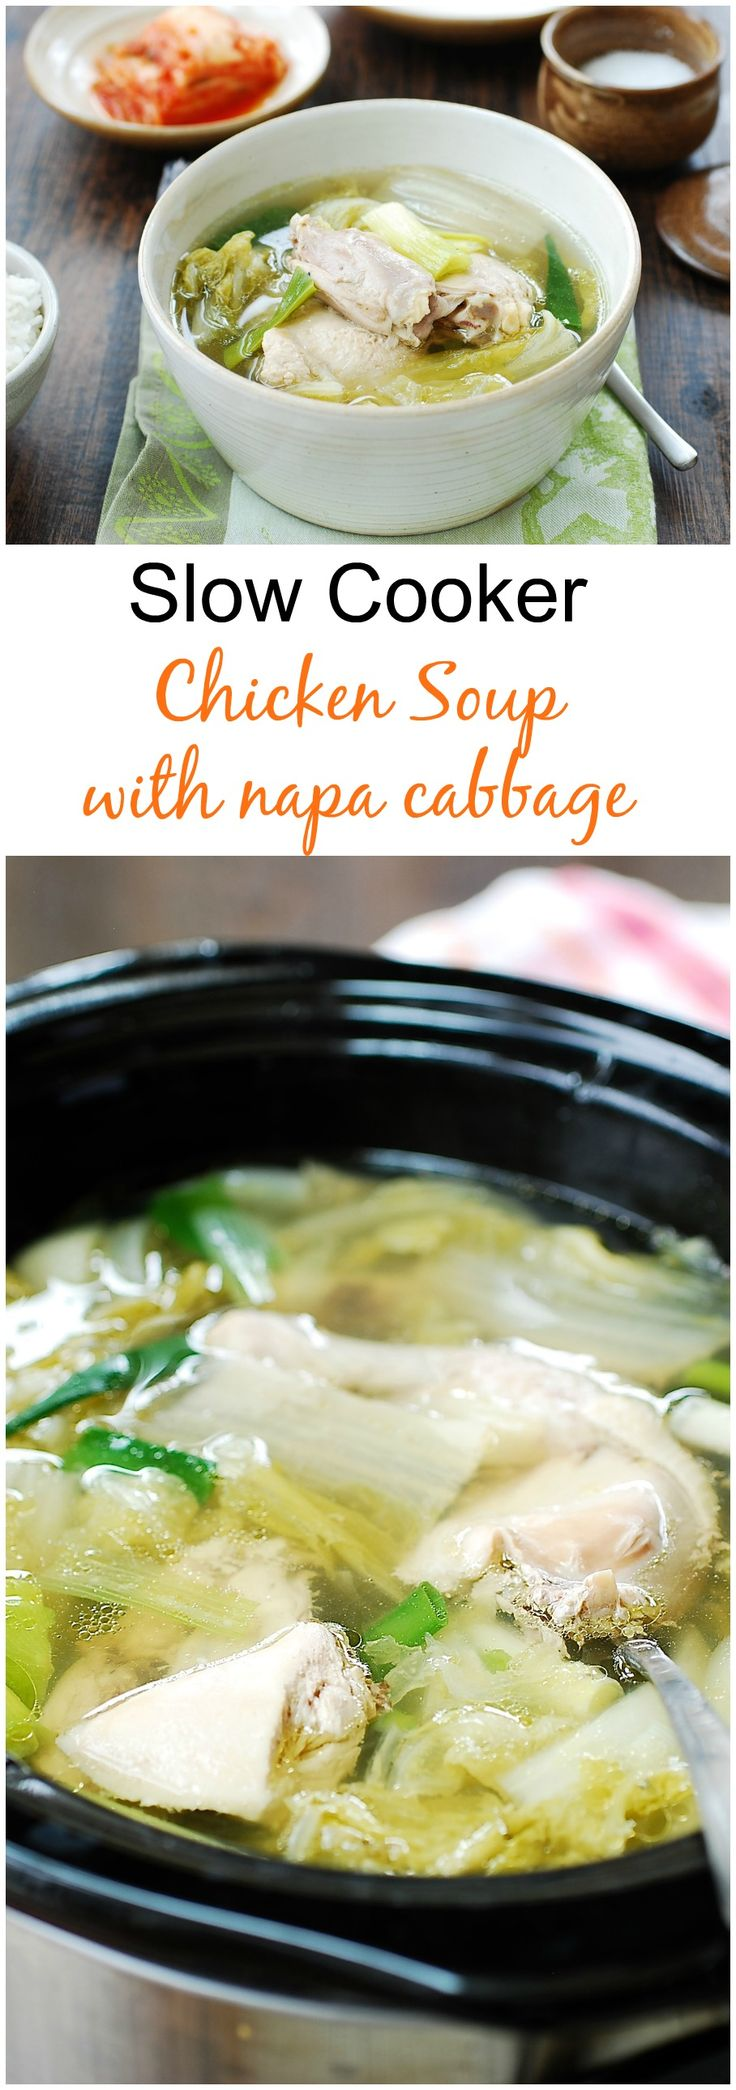 This slow cooker version of a Korean chicken soup with napa cabbage! So easy to make, hearty, and comforting.